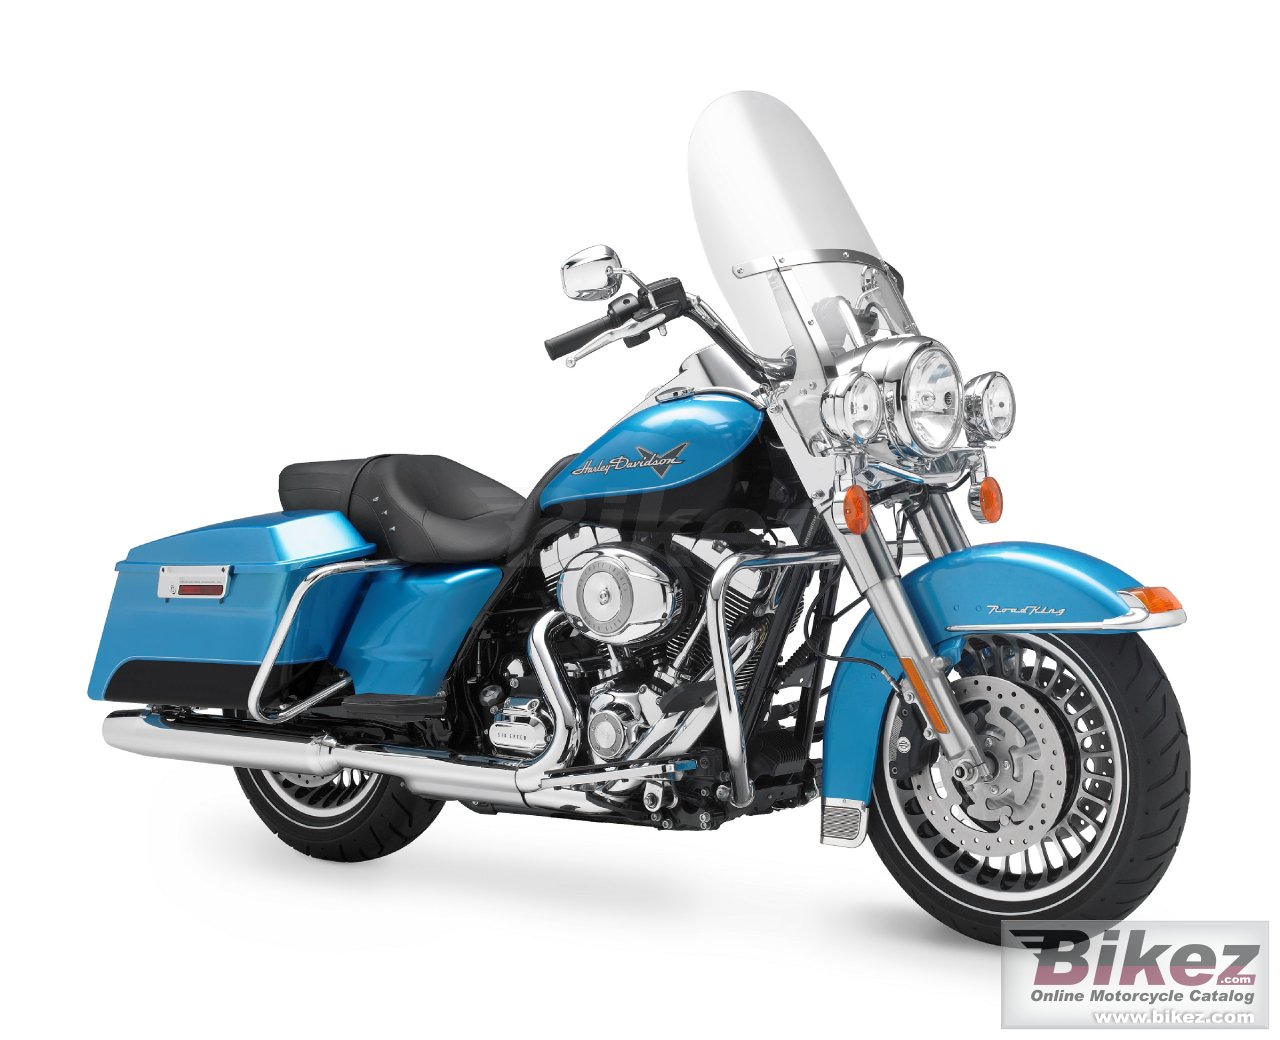 Big Harley-Davidson flhr road king picture and wallpaper from Bikez.com